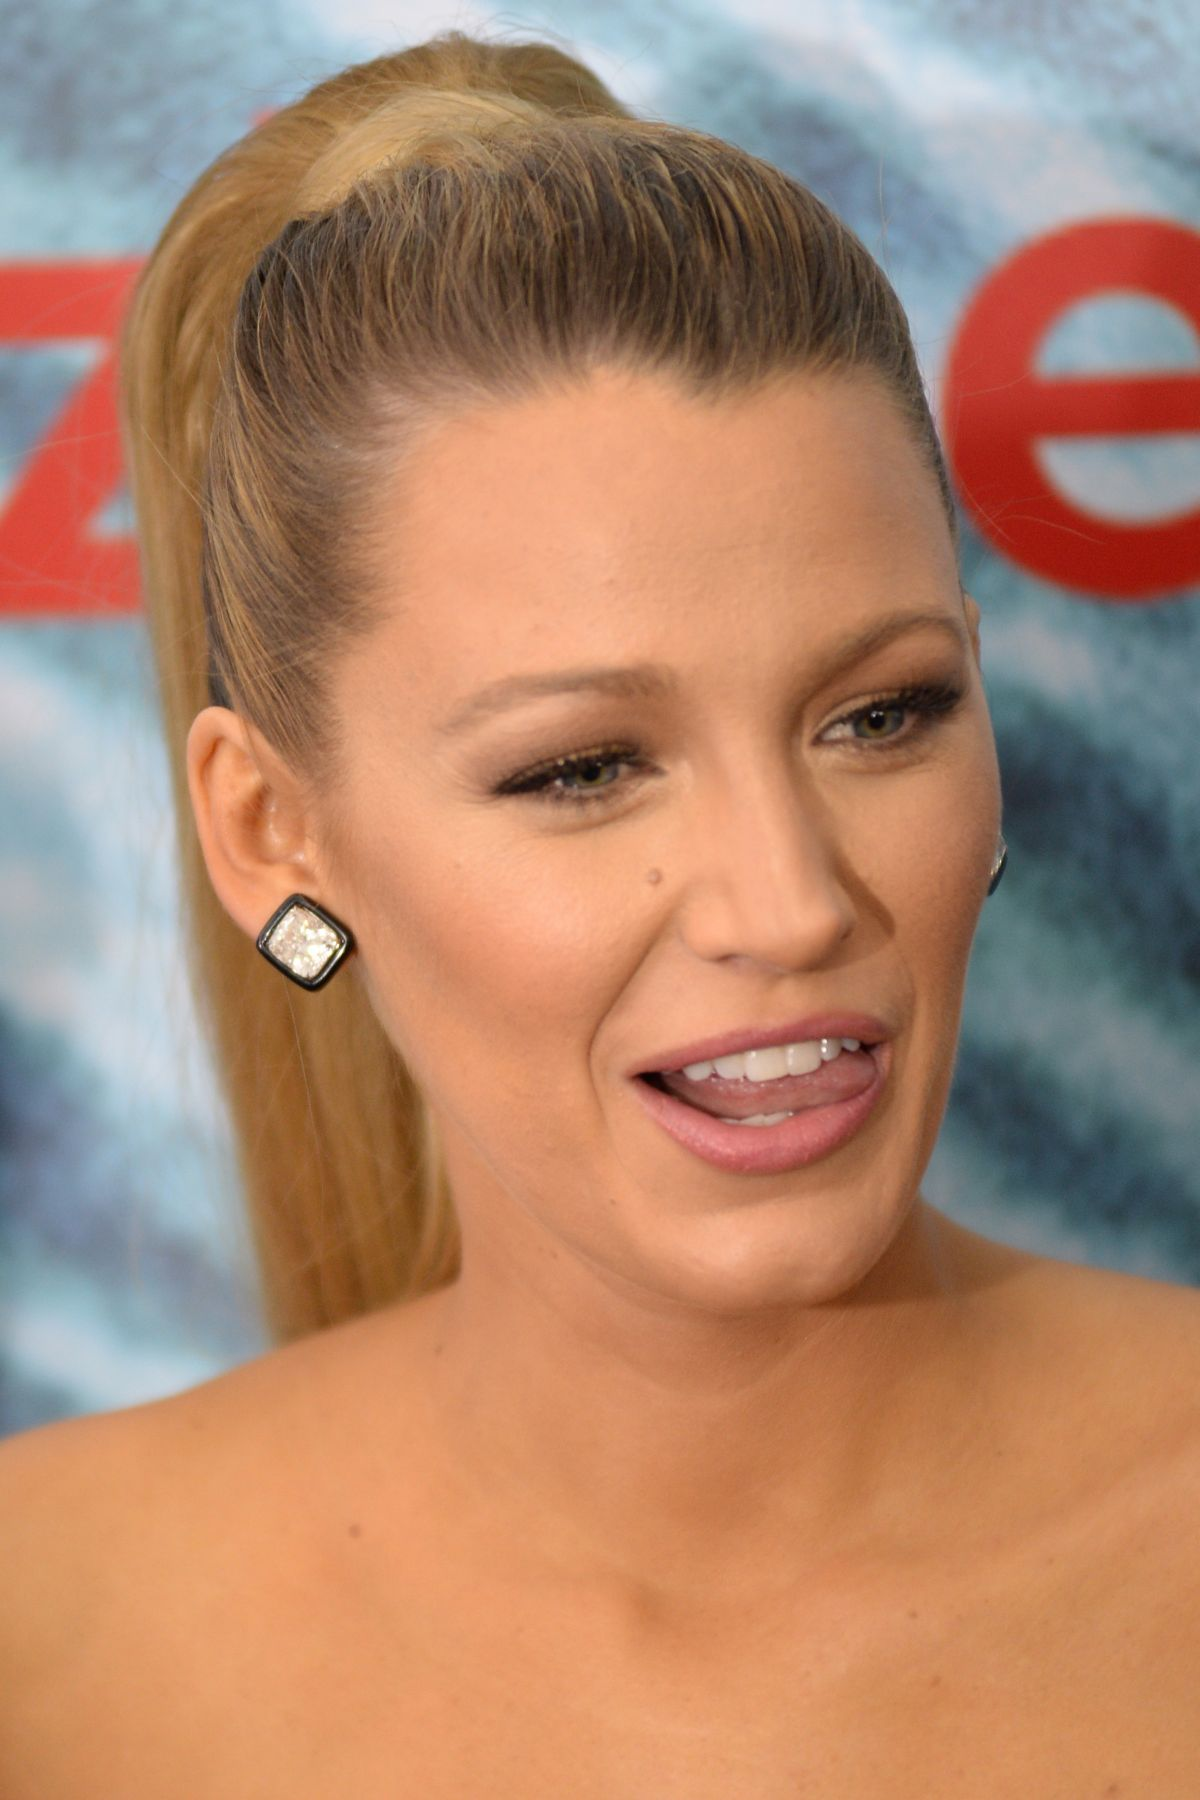 BLAKE LIVELY at Savages Premiere in Los Angeles - HawtCelebs